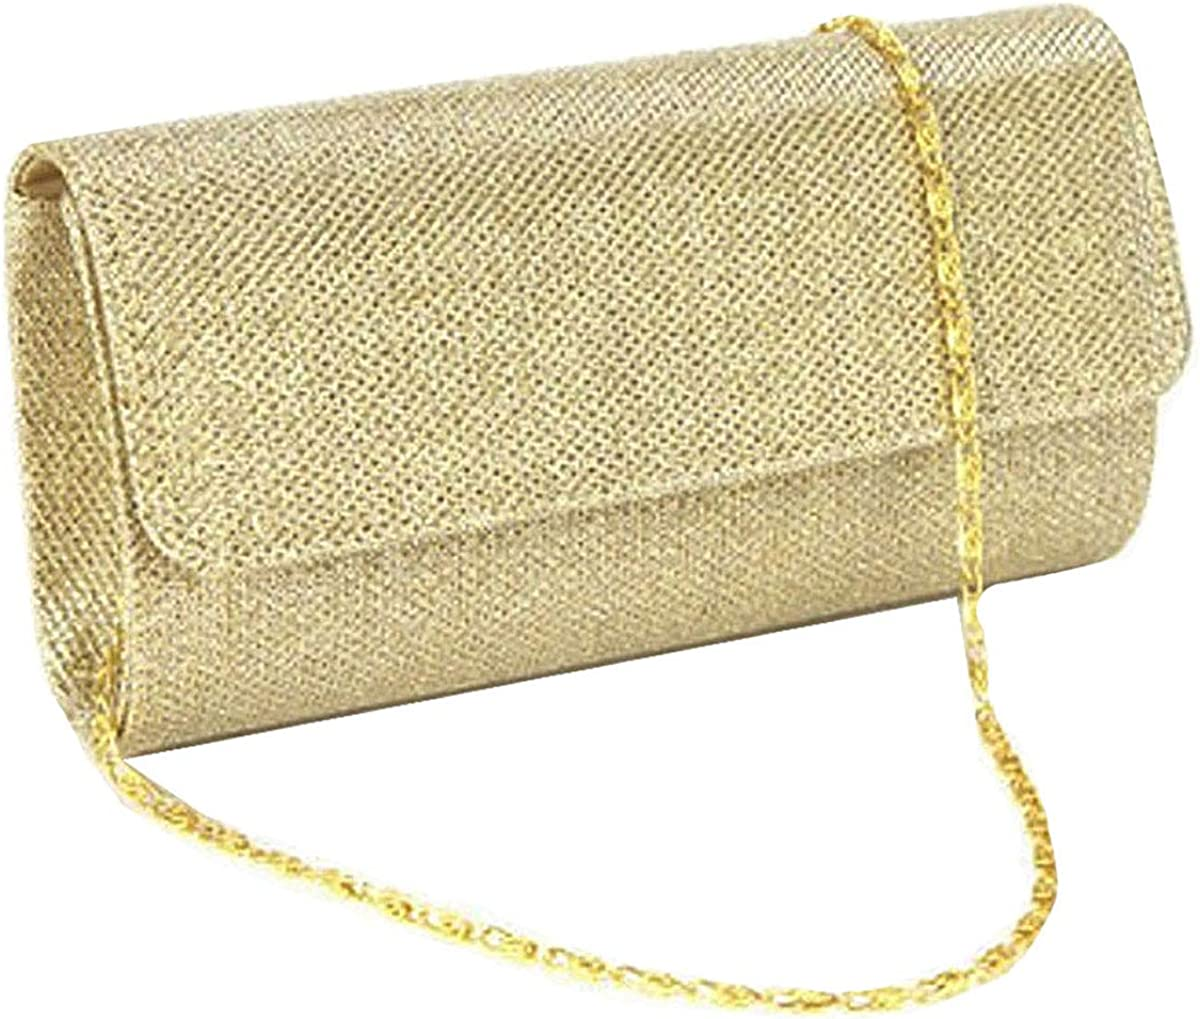 Buddy Evening Bag Clutch...